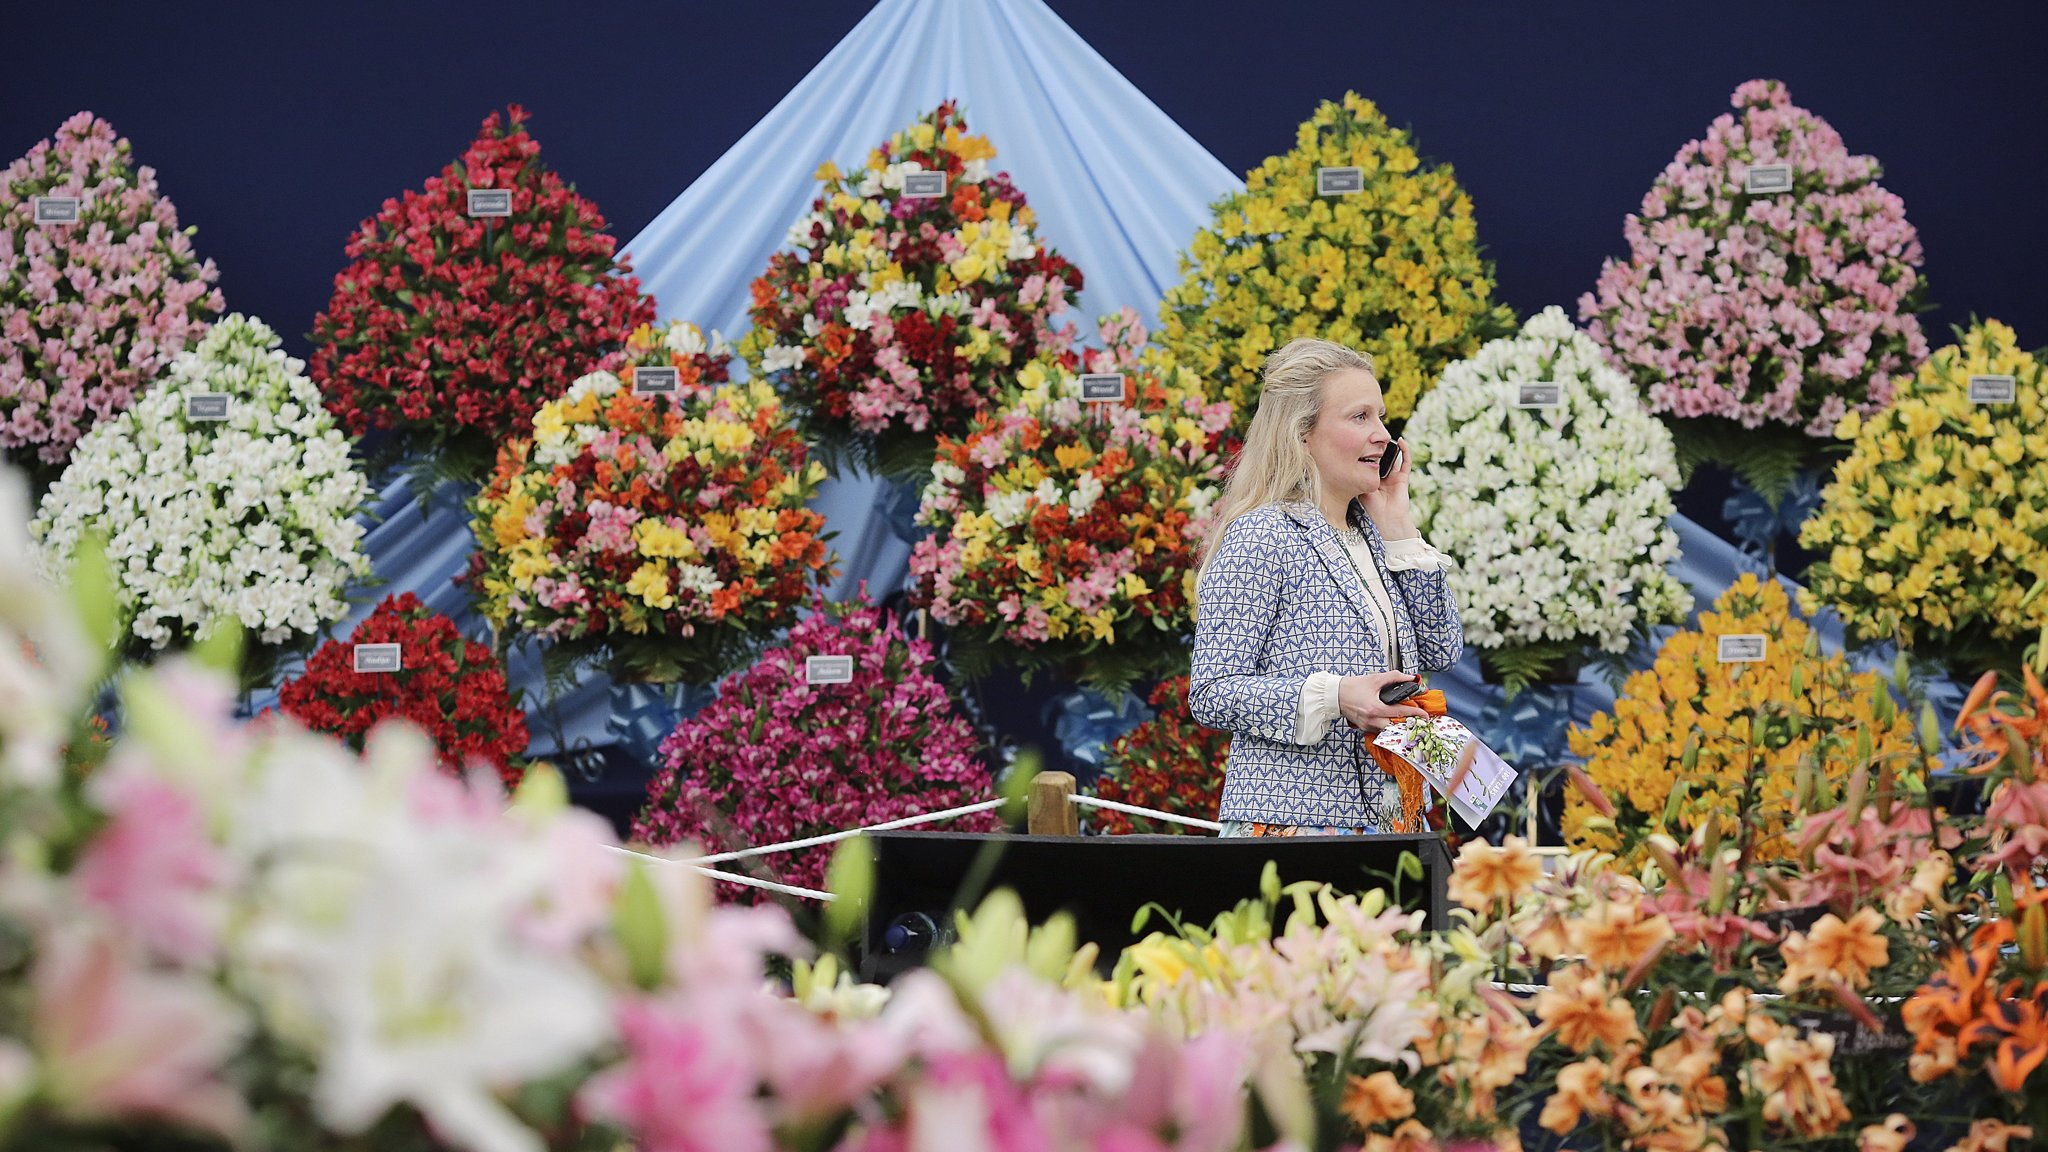 Sponsorship Wilts For The Chelsea Flower Show Financial Times